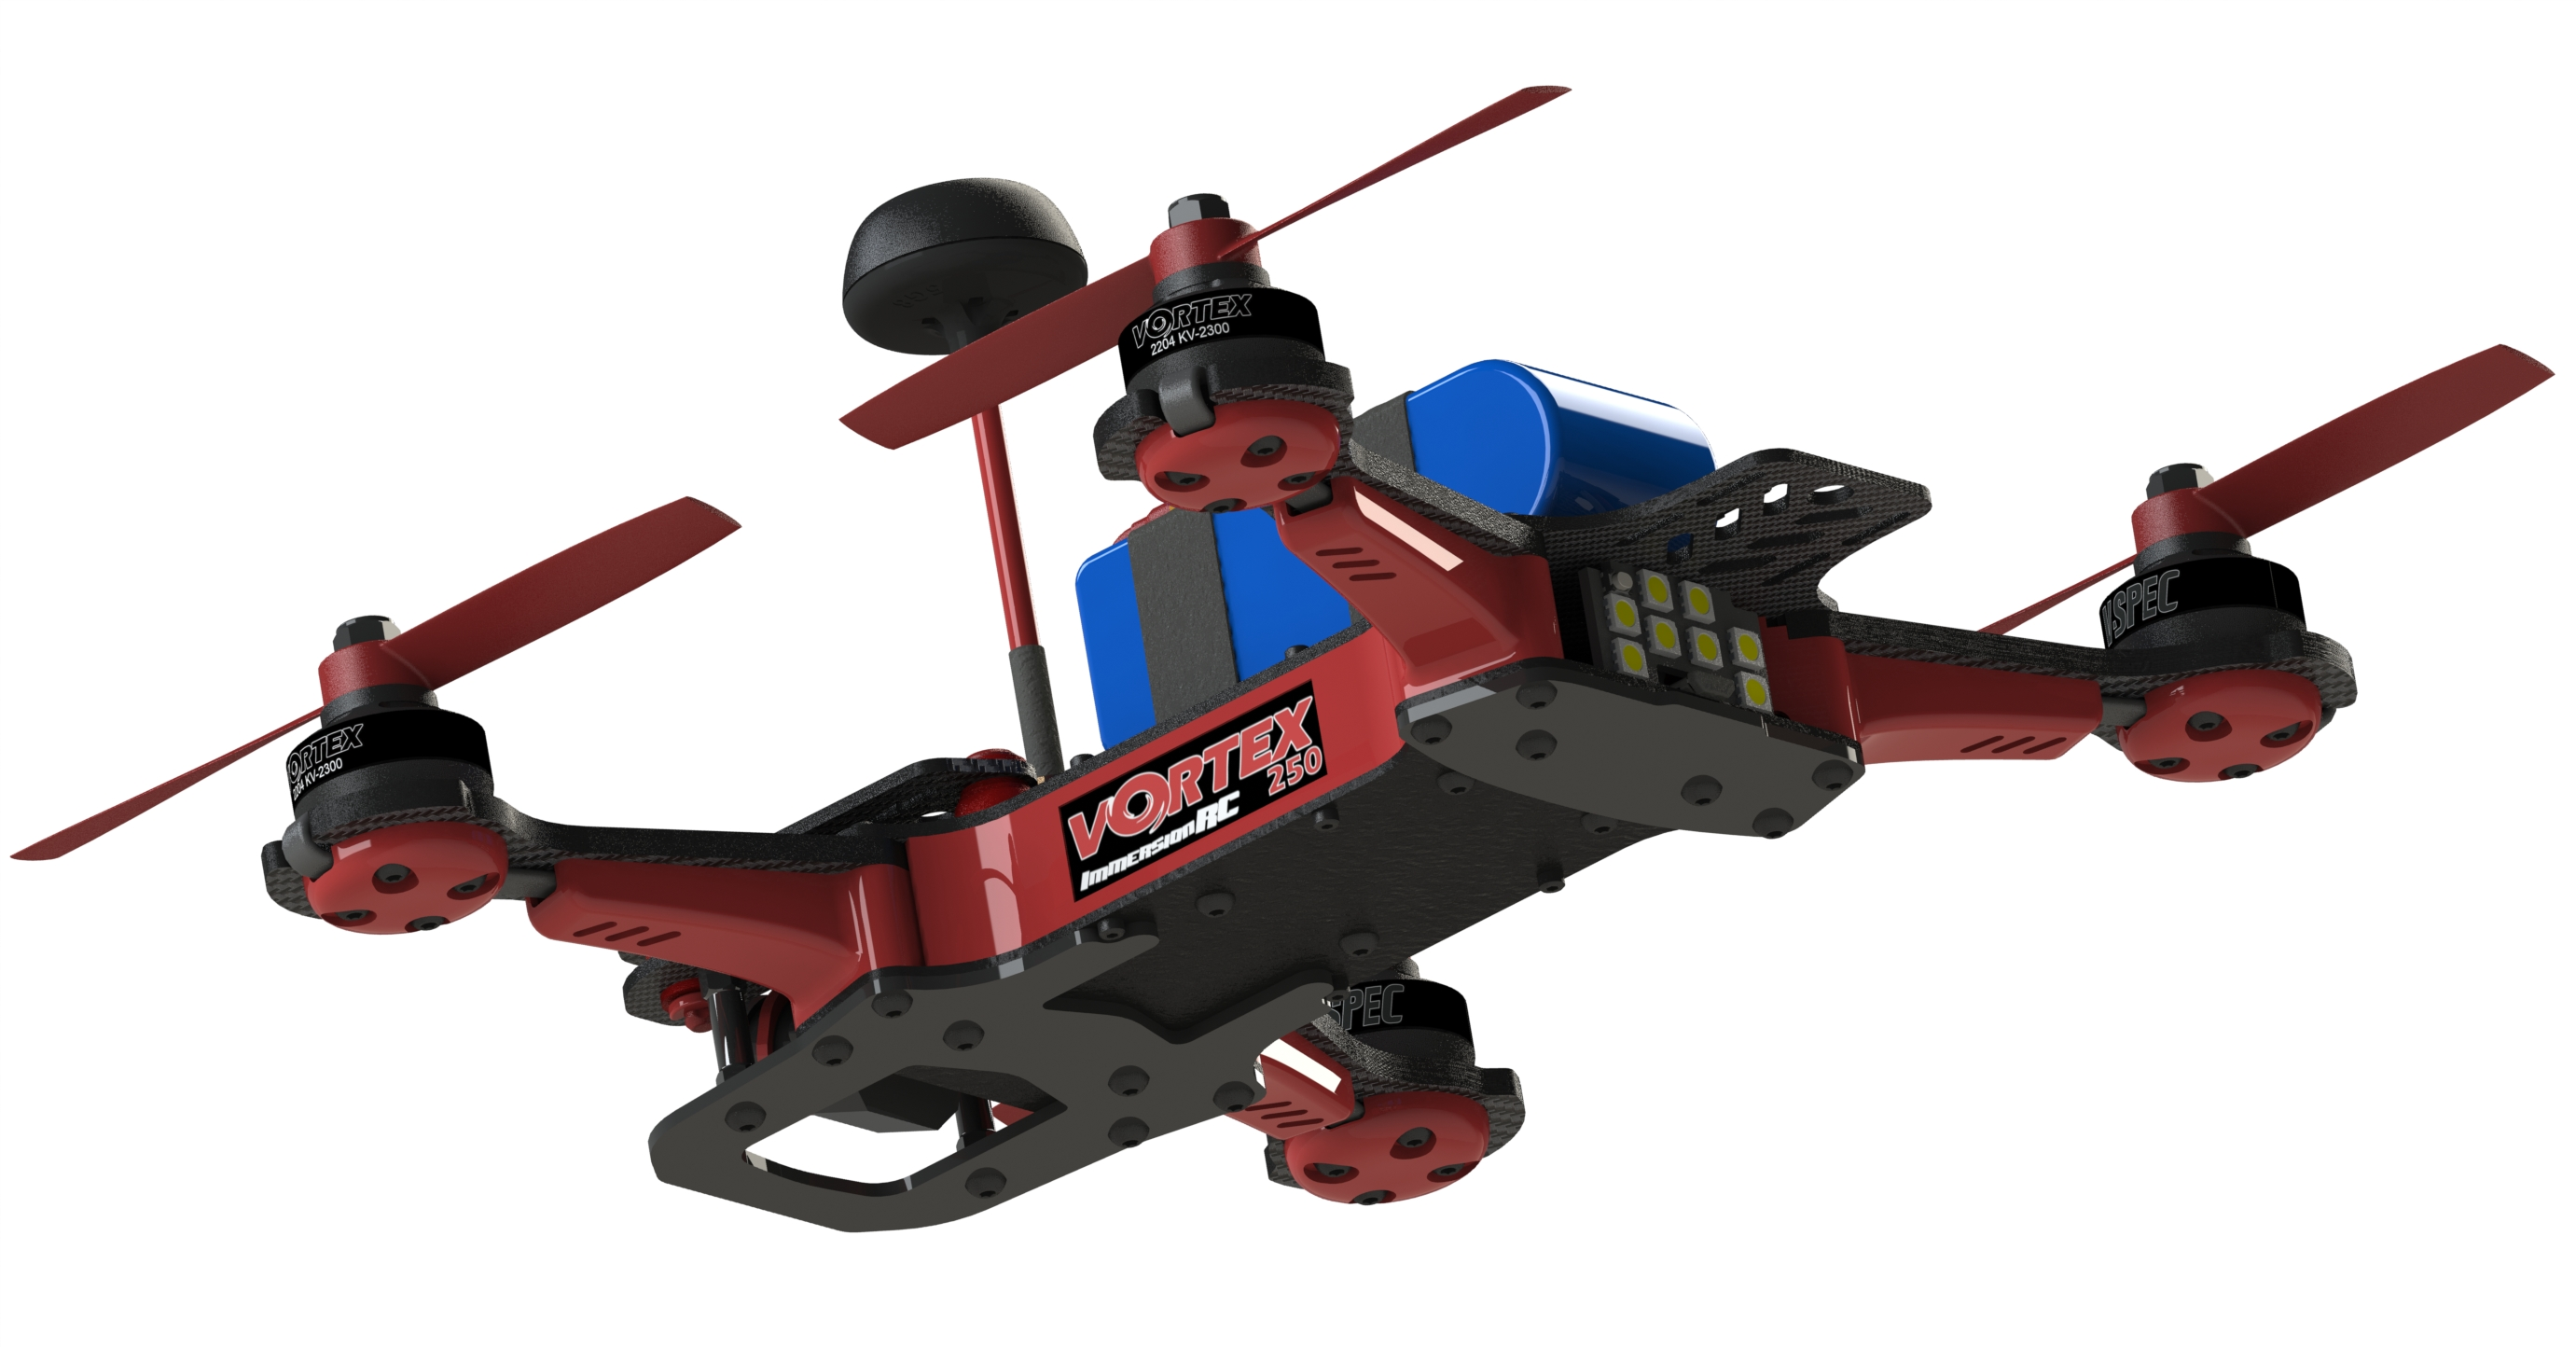 Immersion RC Vortex Pro Spare Parts